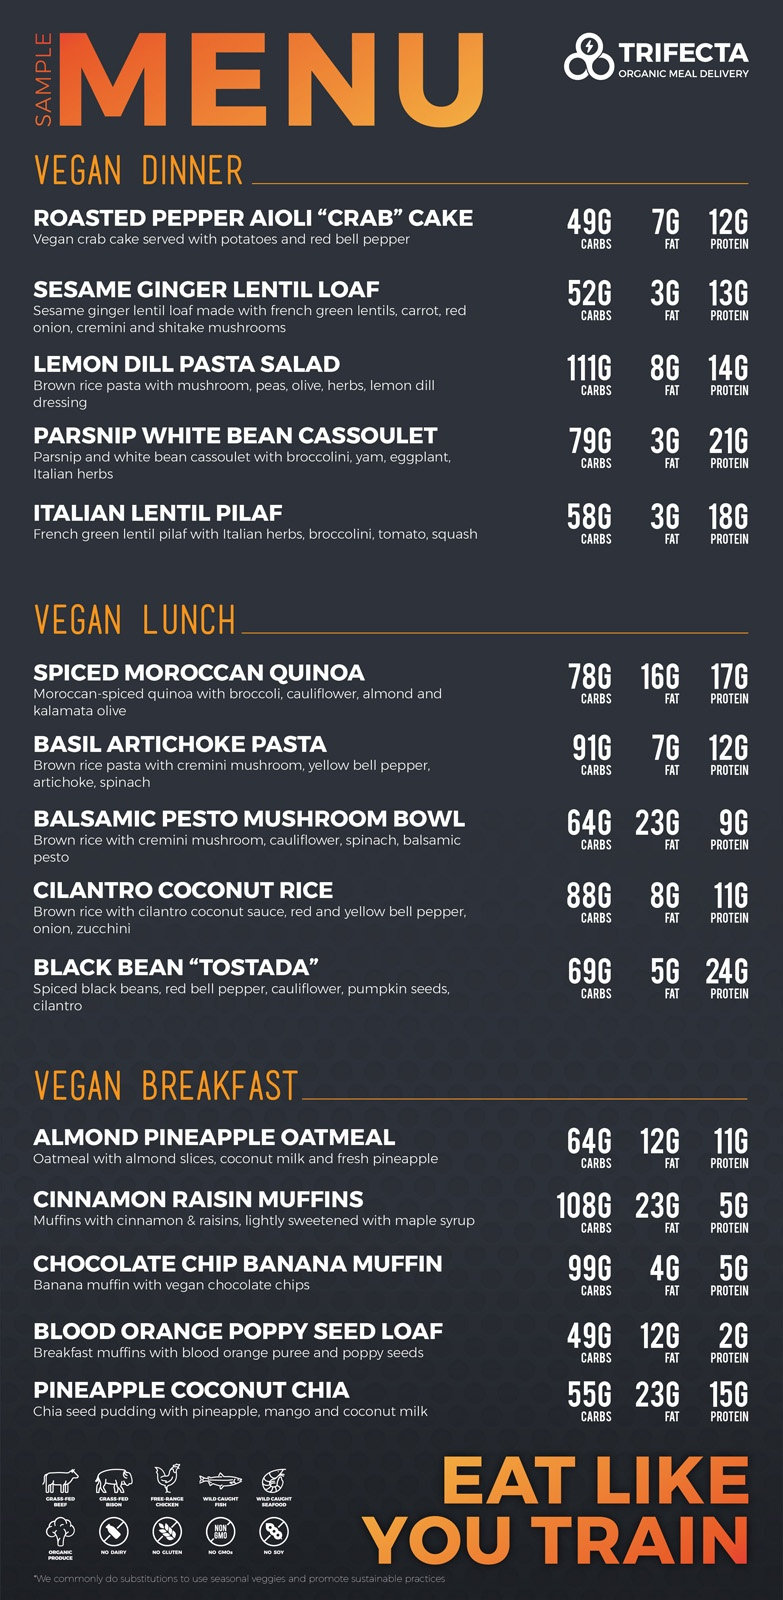 Cl_Sample_Menu_Vegan-01